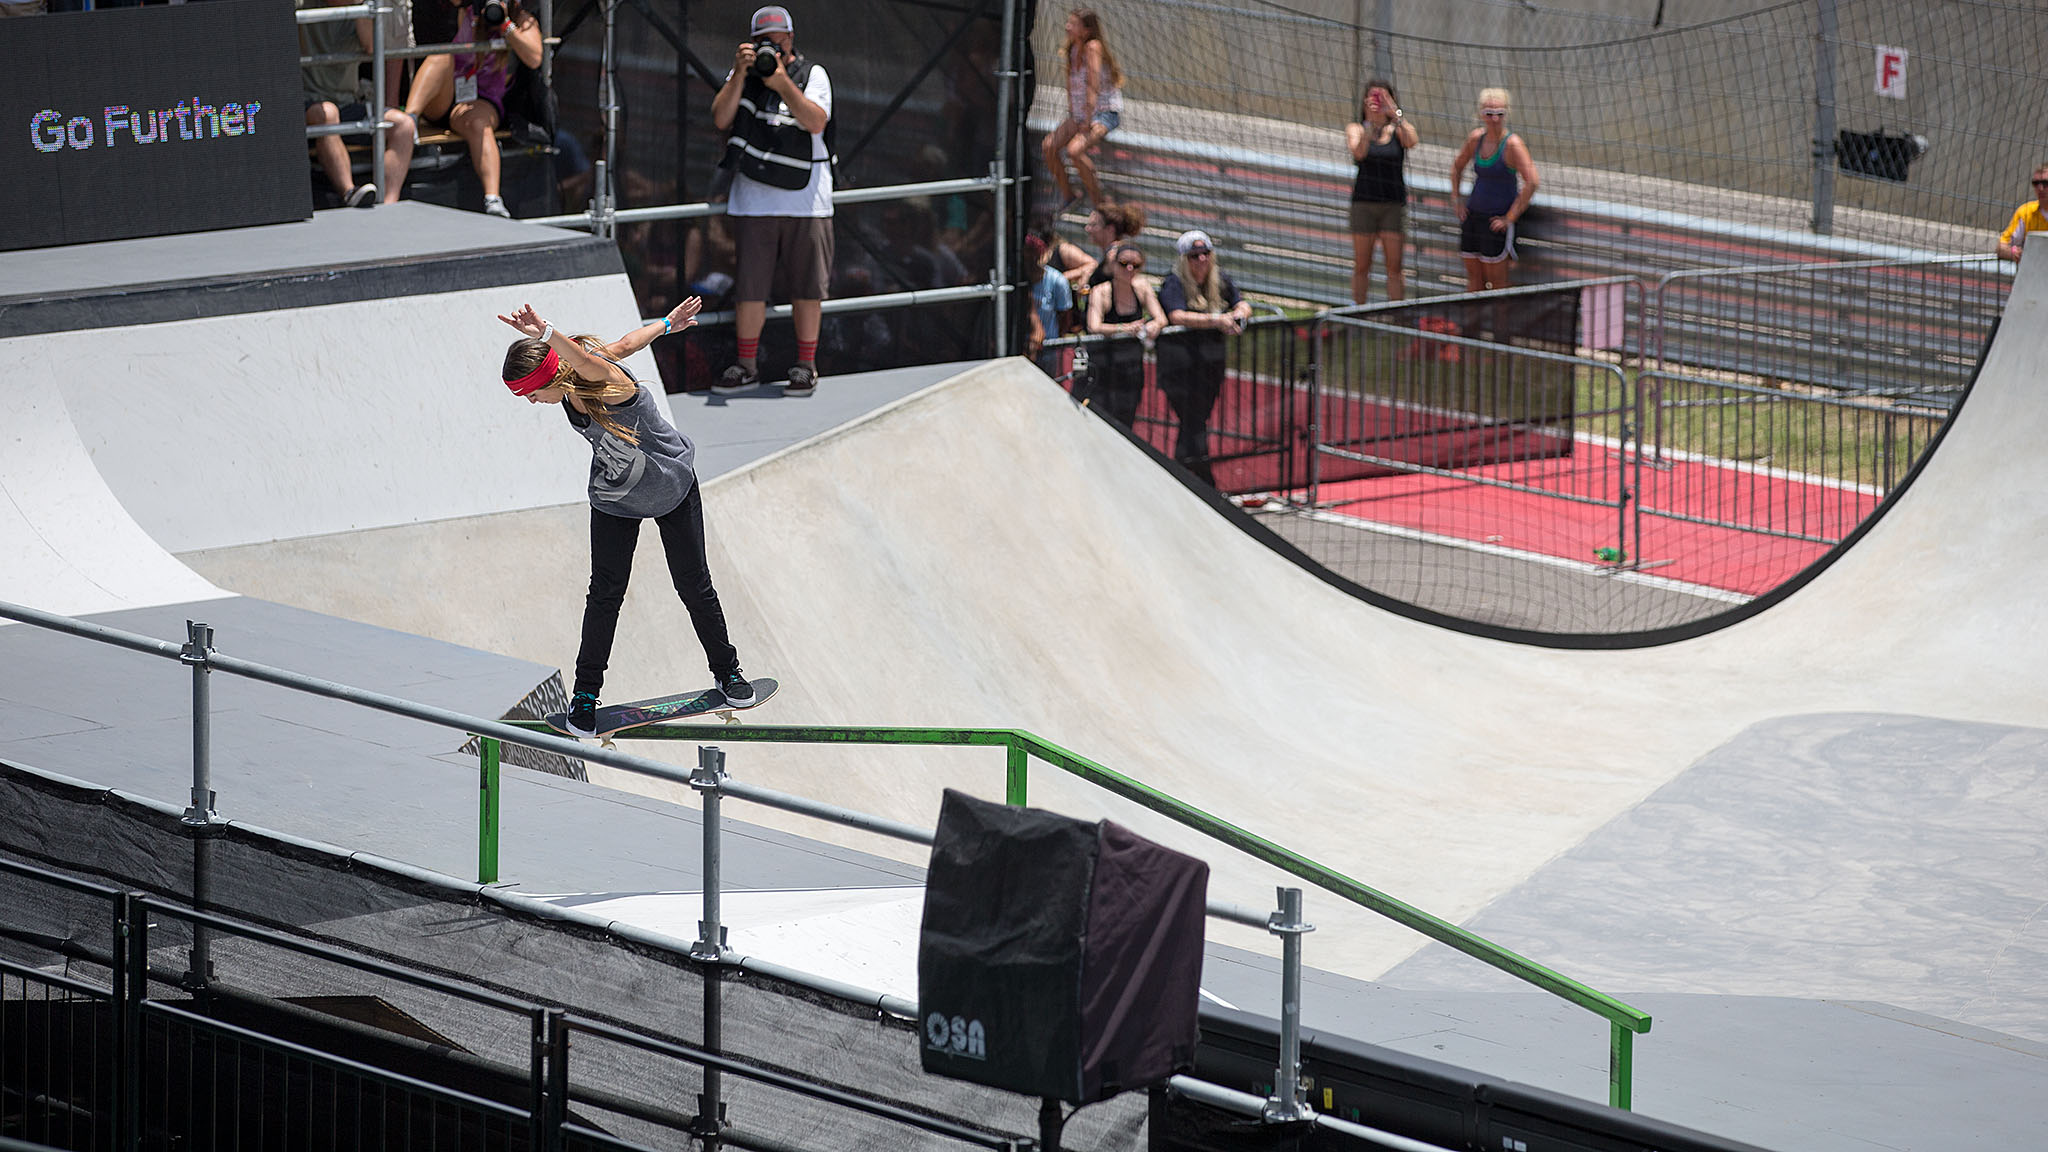 Brazilian Leticia Bufonia came into X Games Austin as the clear favorite in Women's Skateboard Street -- she won the last two X Games Women's Street contests in Los Angeles and Foz do Iguau, Brazil. In the end, Bufoni finished the competition with the bronze medal, behind winner Lacey Baker and silver medalist and fellow Brazilian Pamela Rosa.